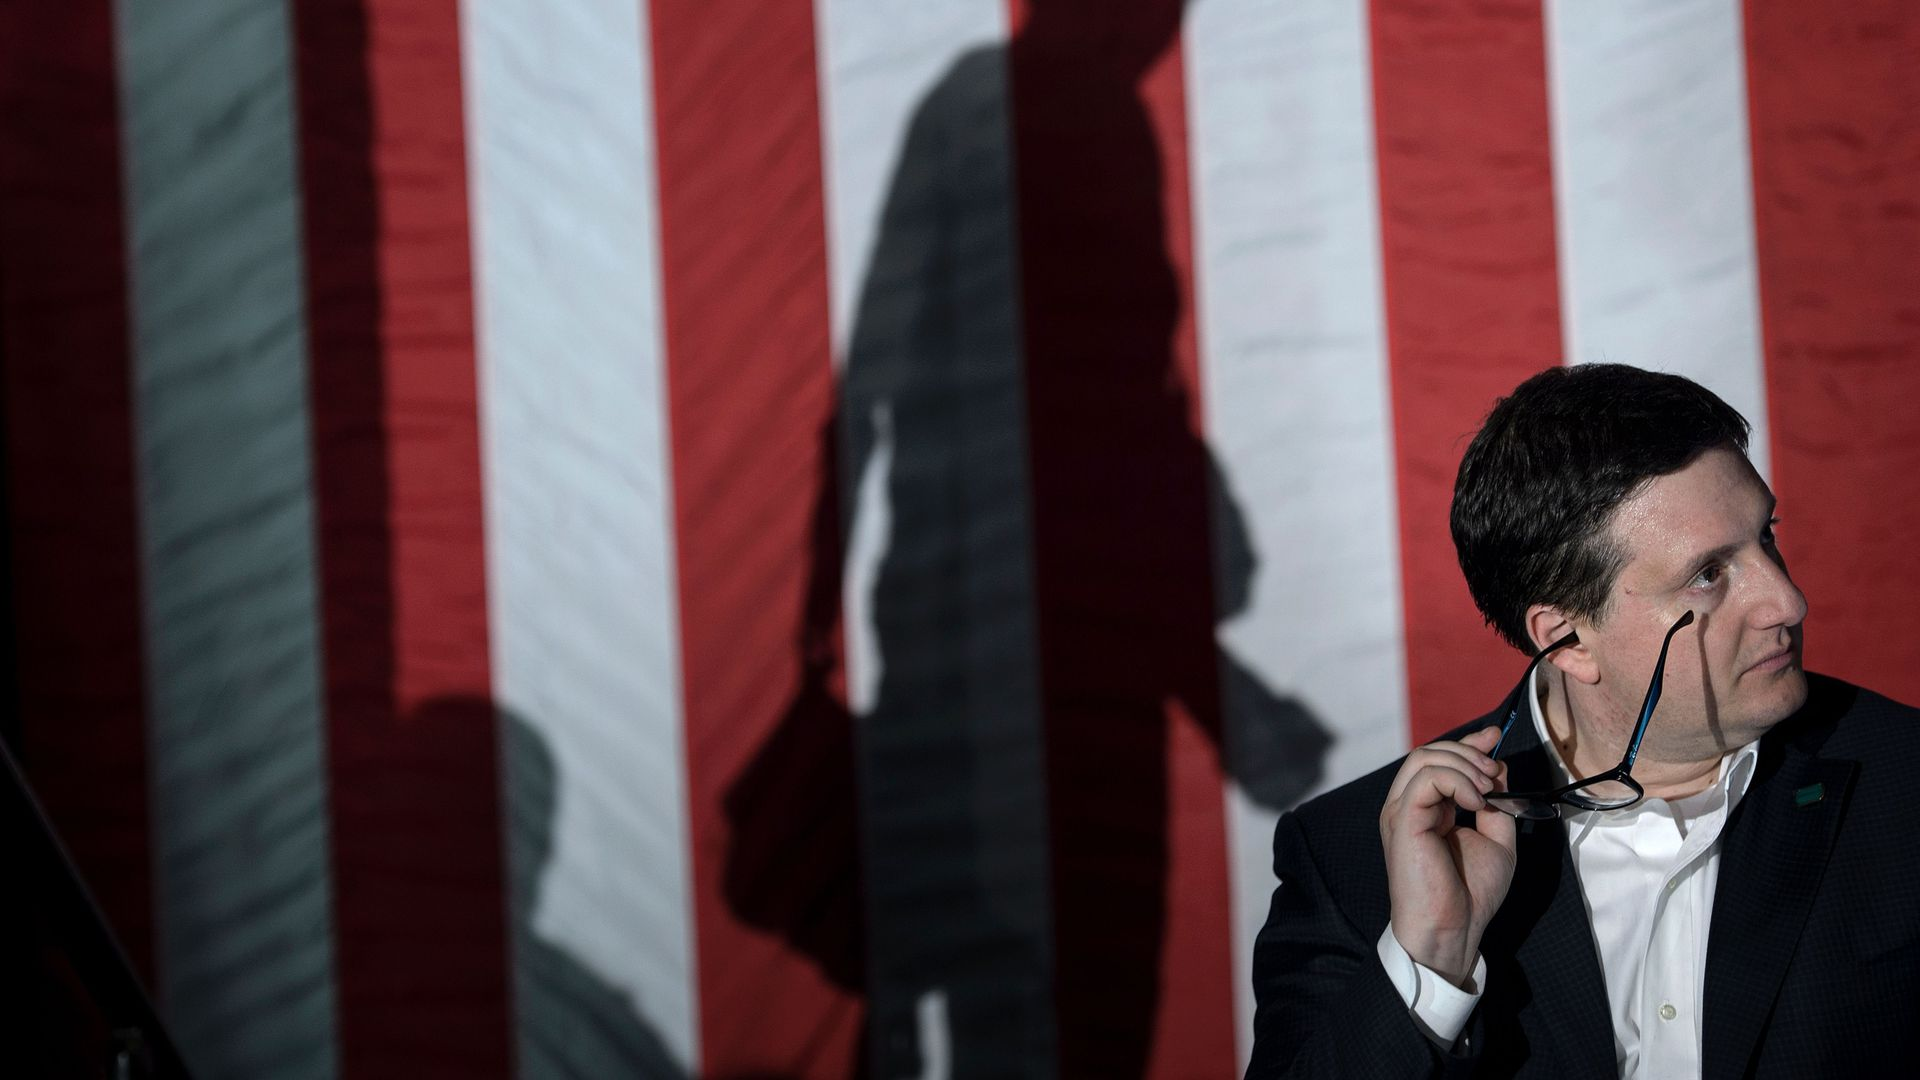 Philippe Reines sits and holds his glasses to his face with a large American flag behind him, and the shadow of Hillary Clinton walking on stage.